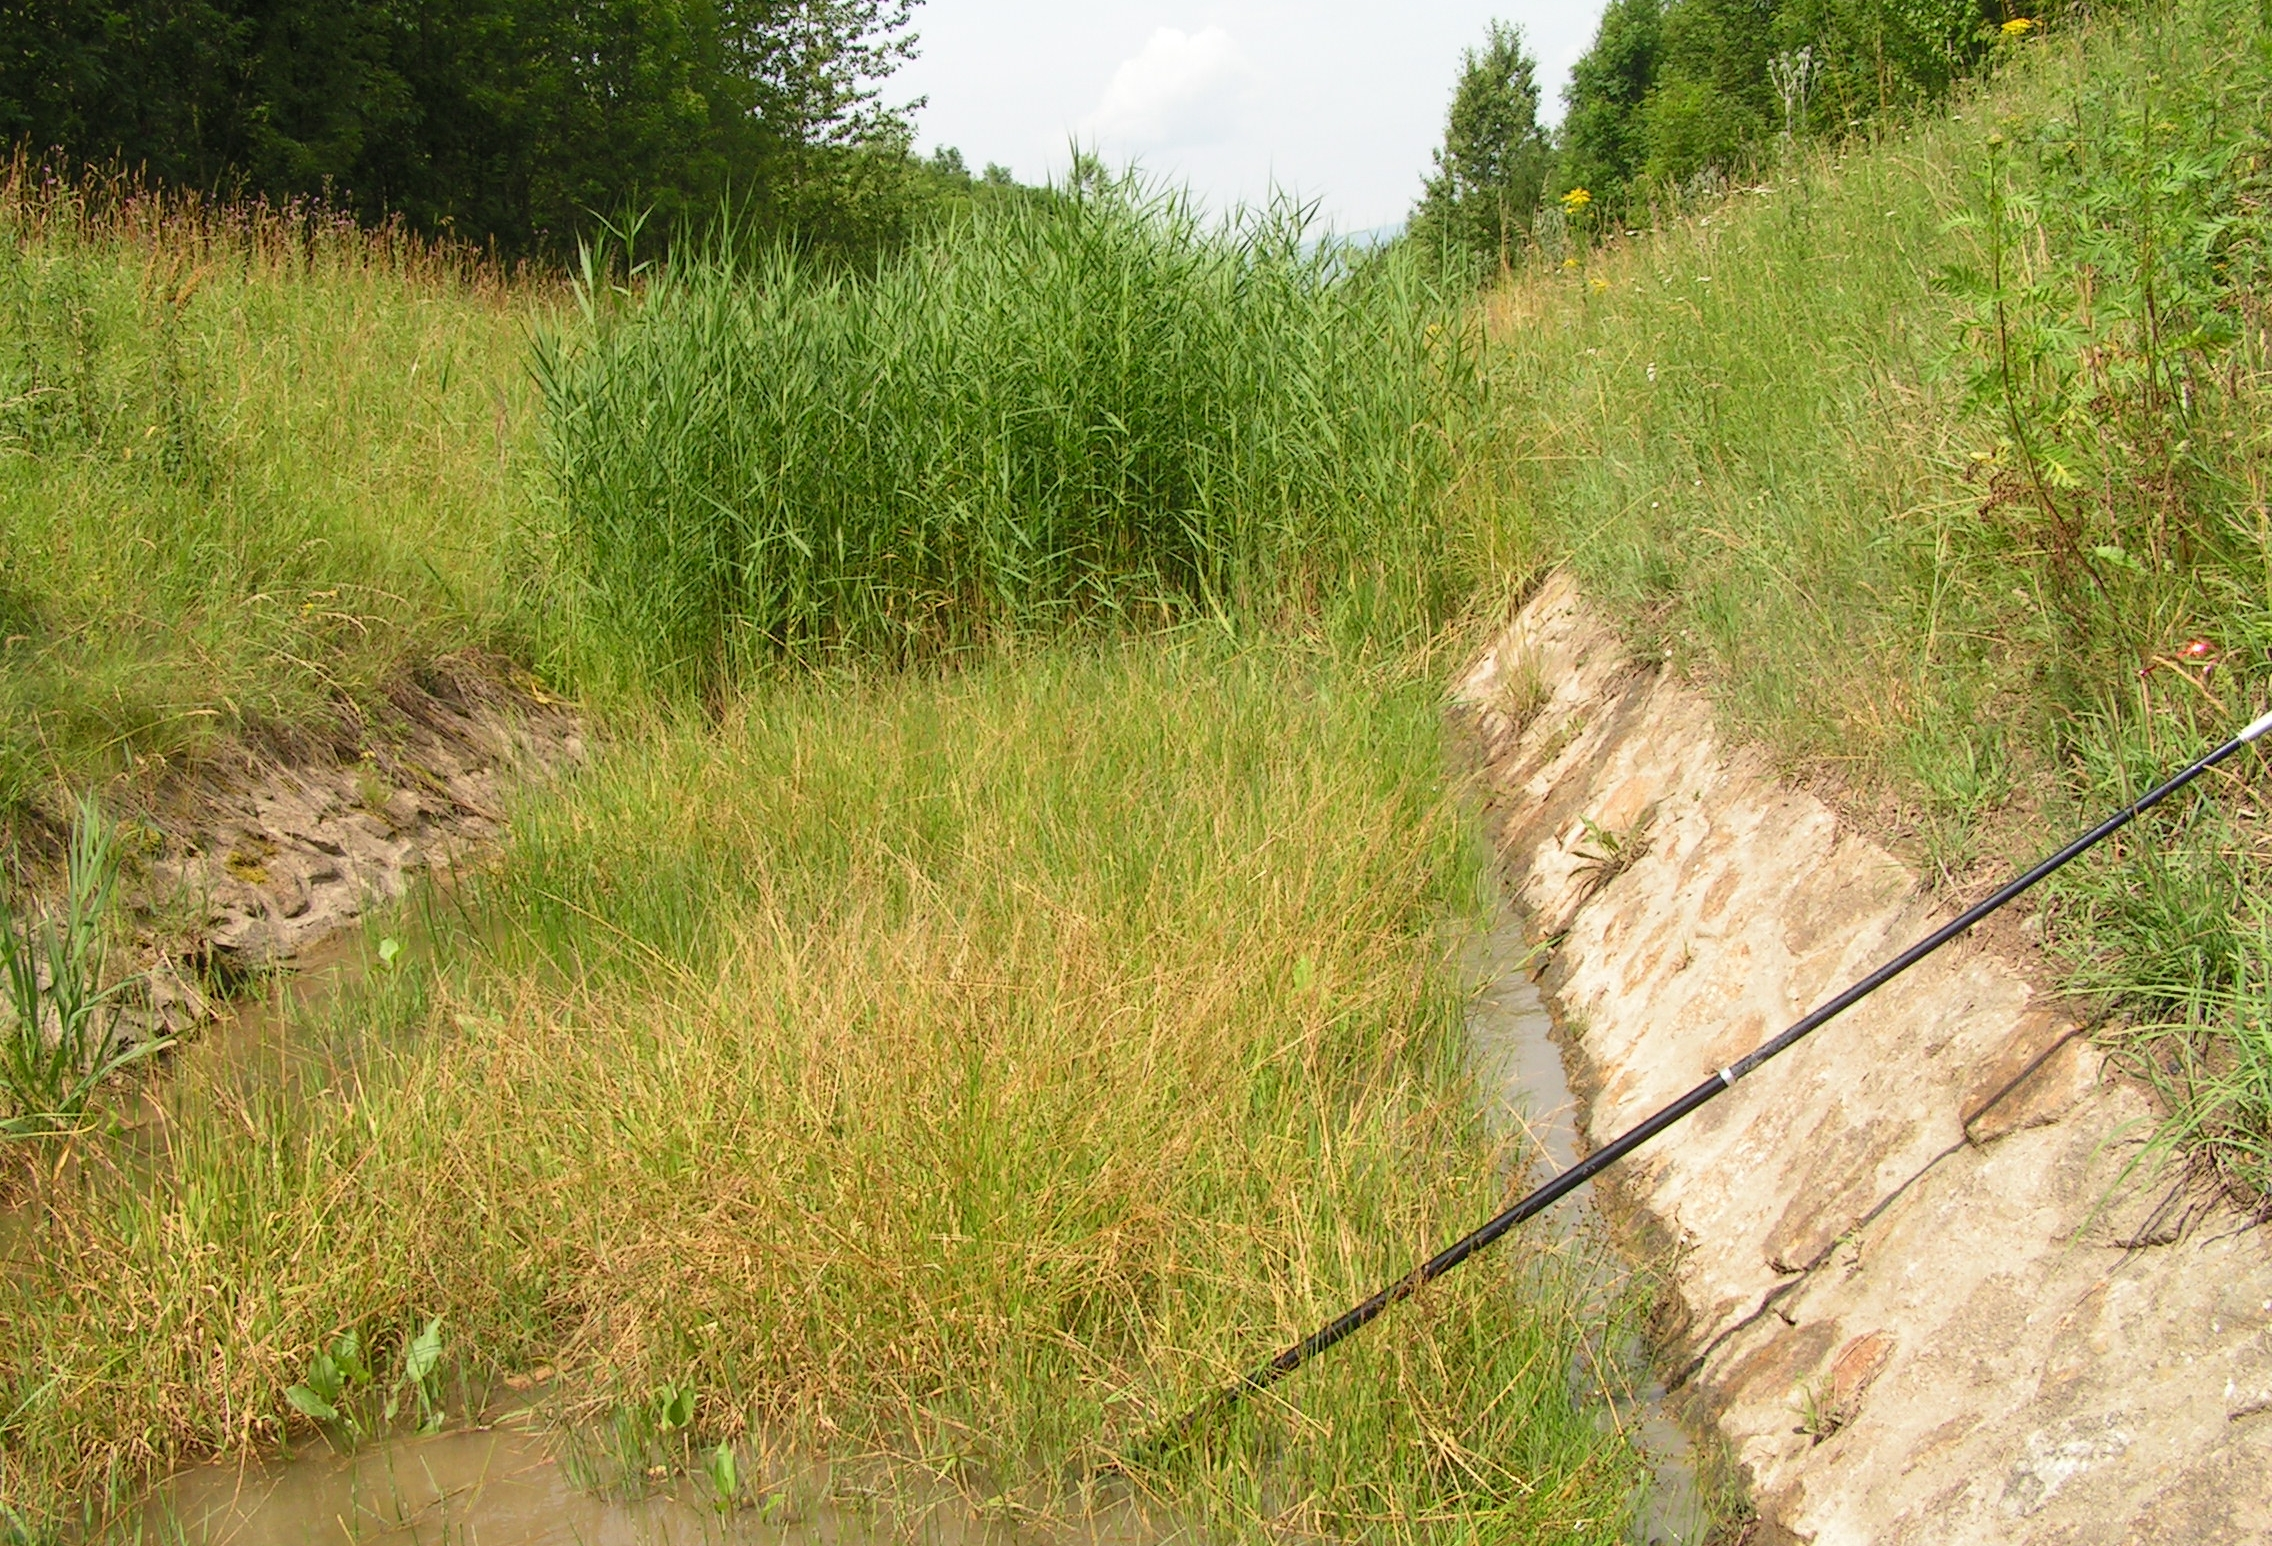 post-mining drainage channel